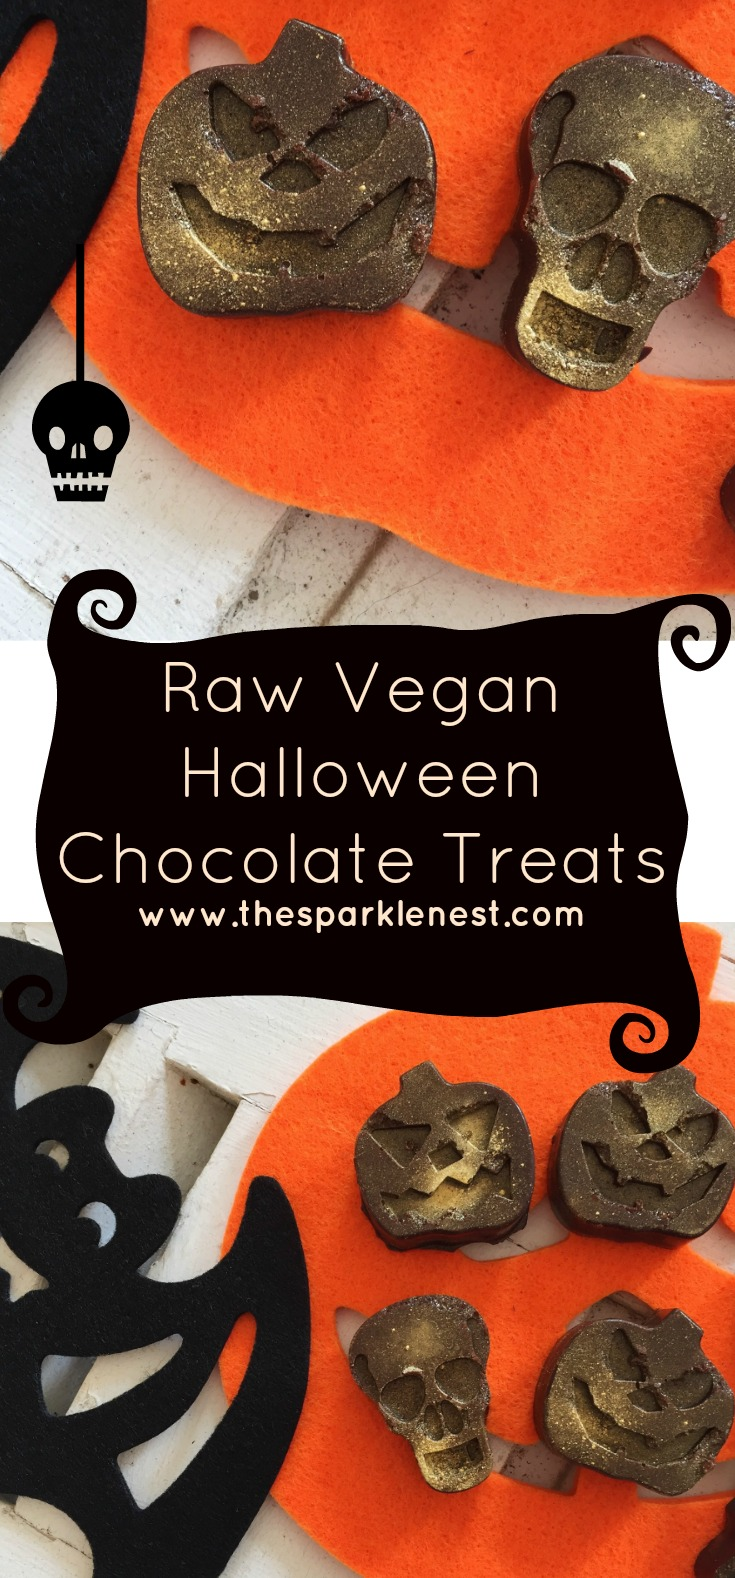 Vegan Halloween Chocolate